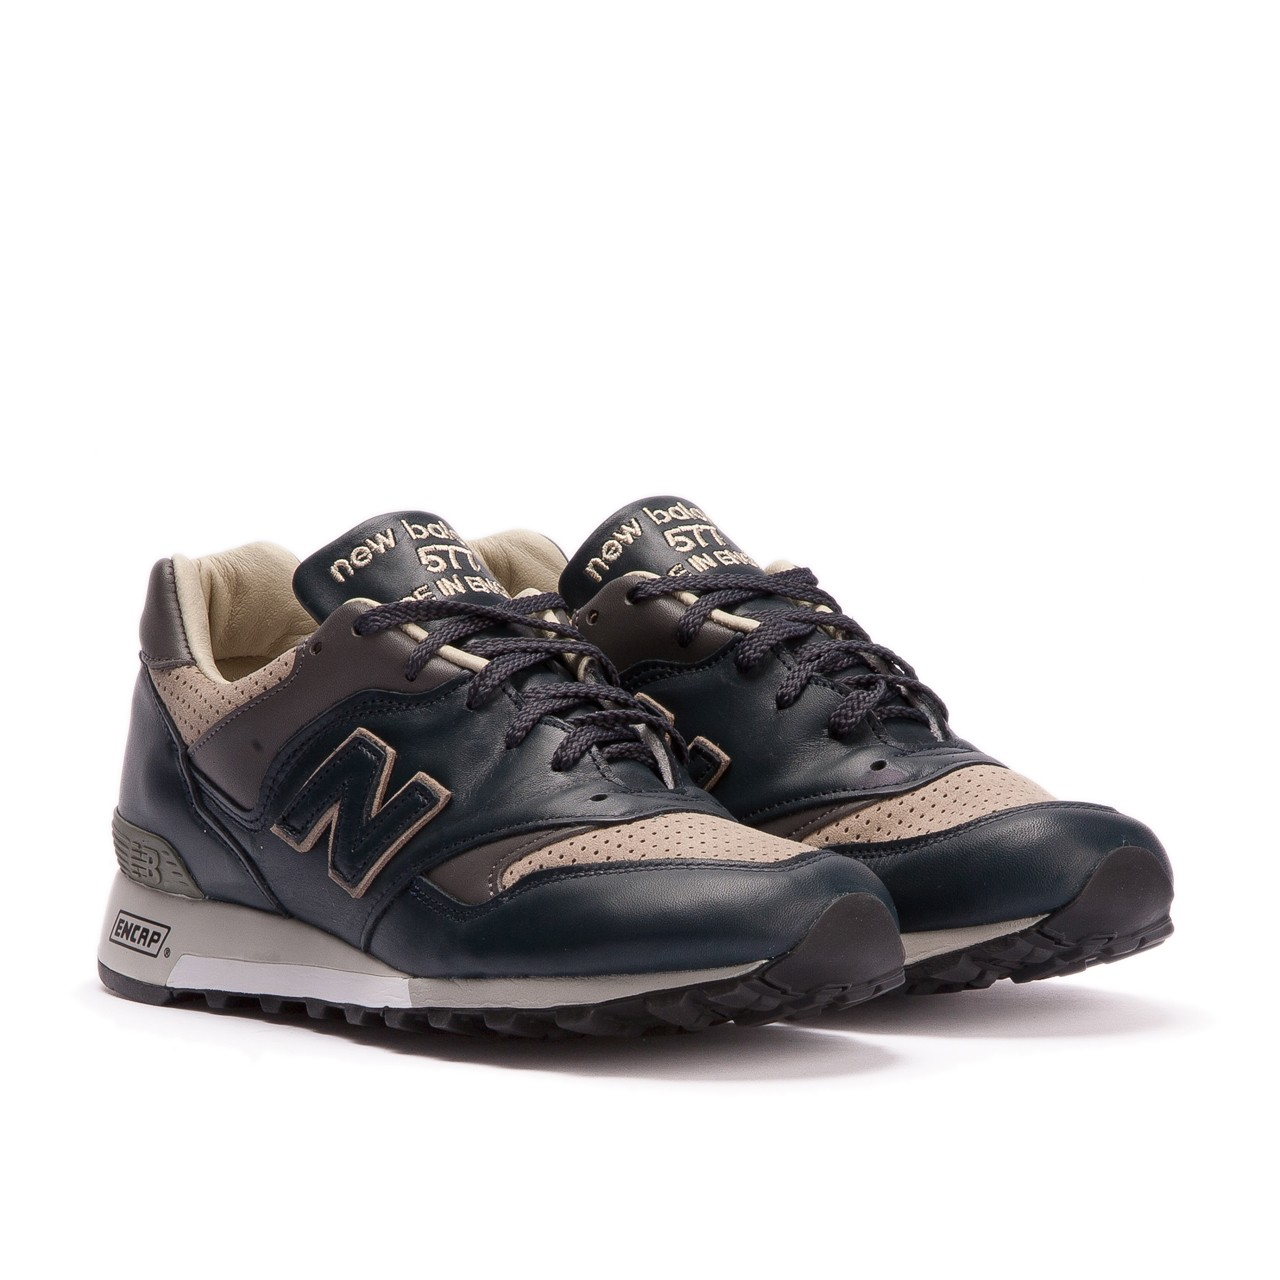 Jual New Balance 577 Made In England LNT   LBT - Nomad Store ... 3e92d44751